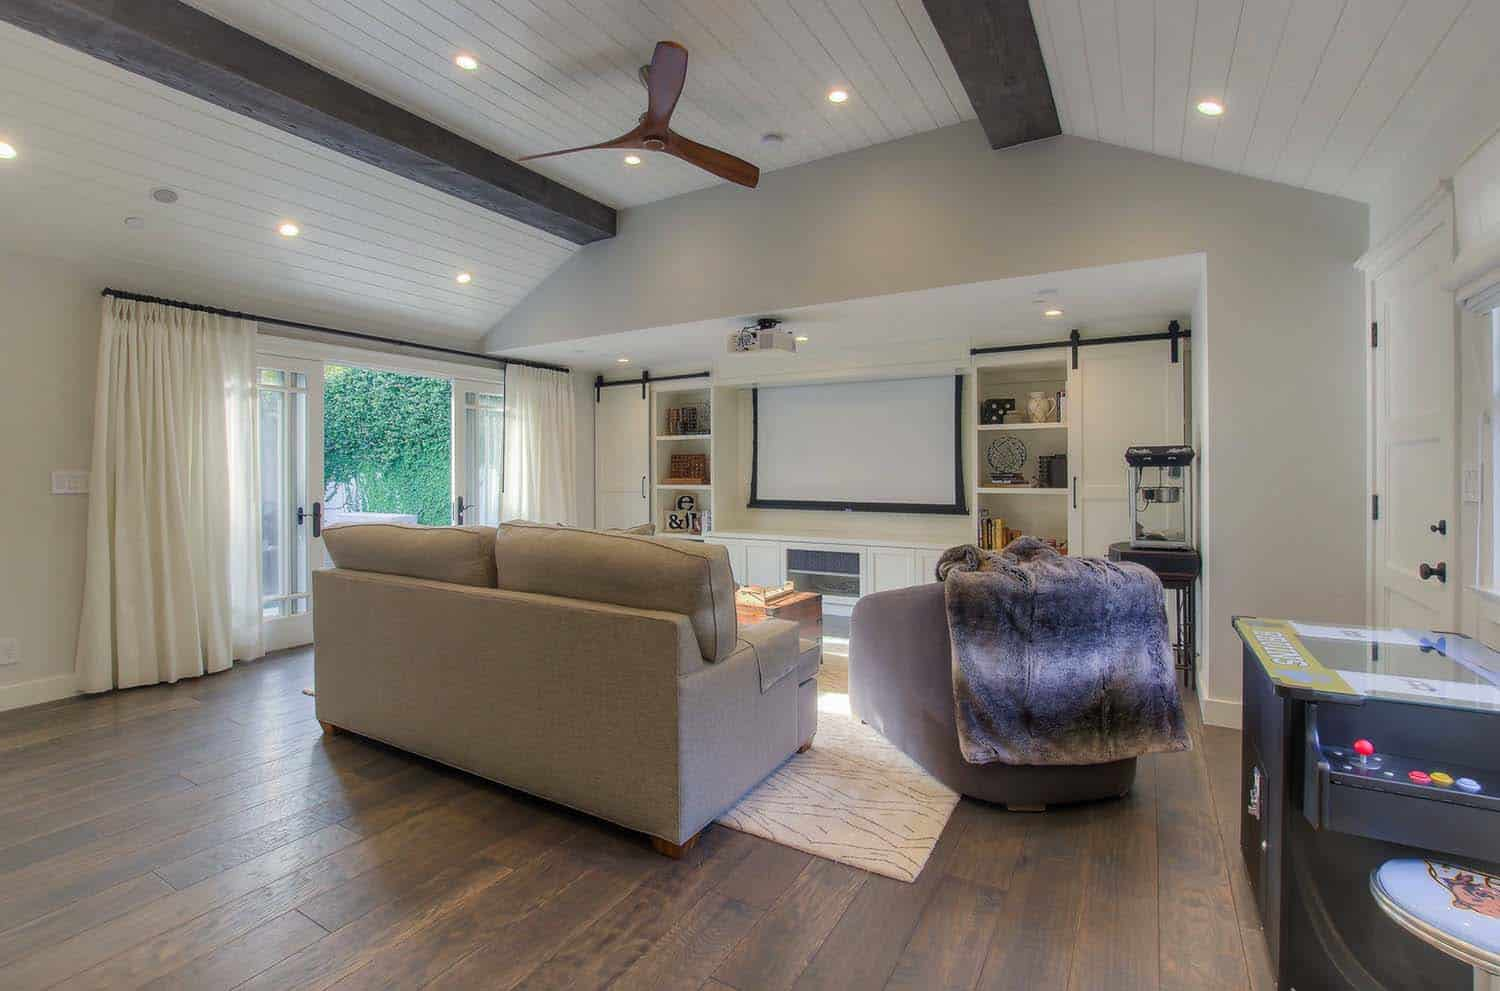 Reclaimed Wood Bathroom Floor Garage Conversion To Cool Entertainment Space In Santa Monica